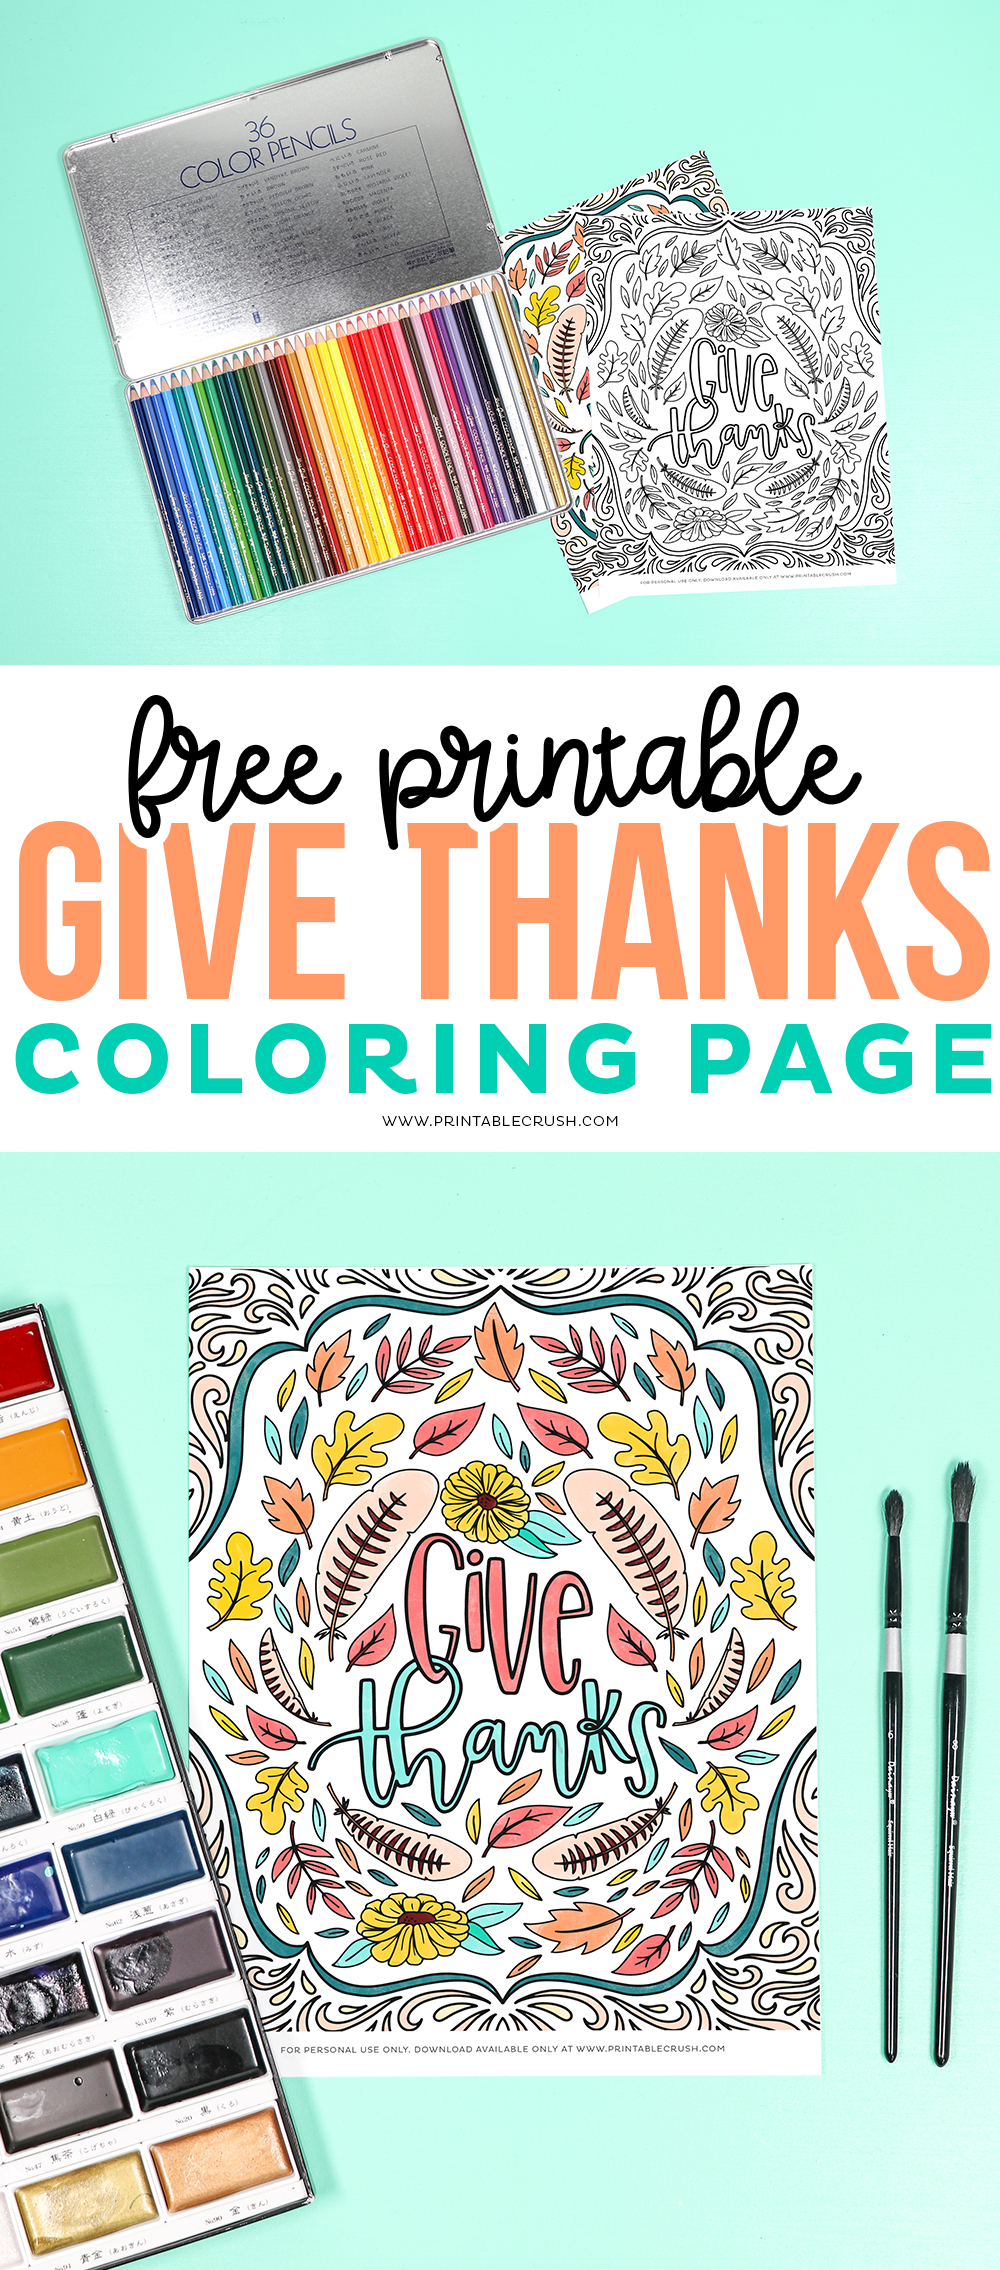 Give Thanks Coloring Page Free Printable - Thanksgiving Coloring Page from Printable Crush #freeprintable #printablecrush #thanksgivingprintable #thanksgiving #givethanks #givethanksprintable via @printablecrush